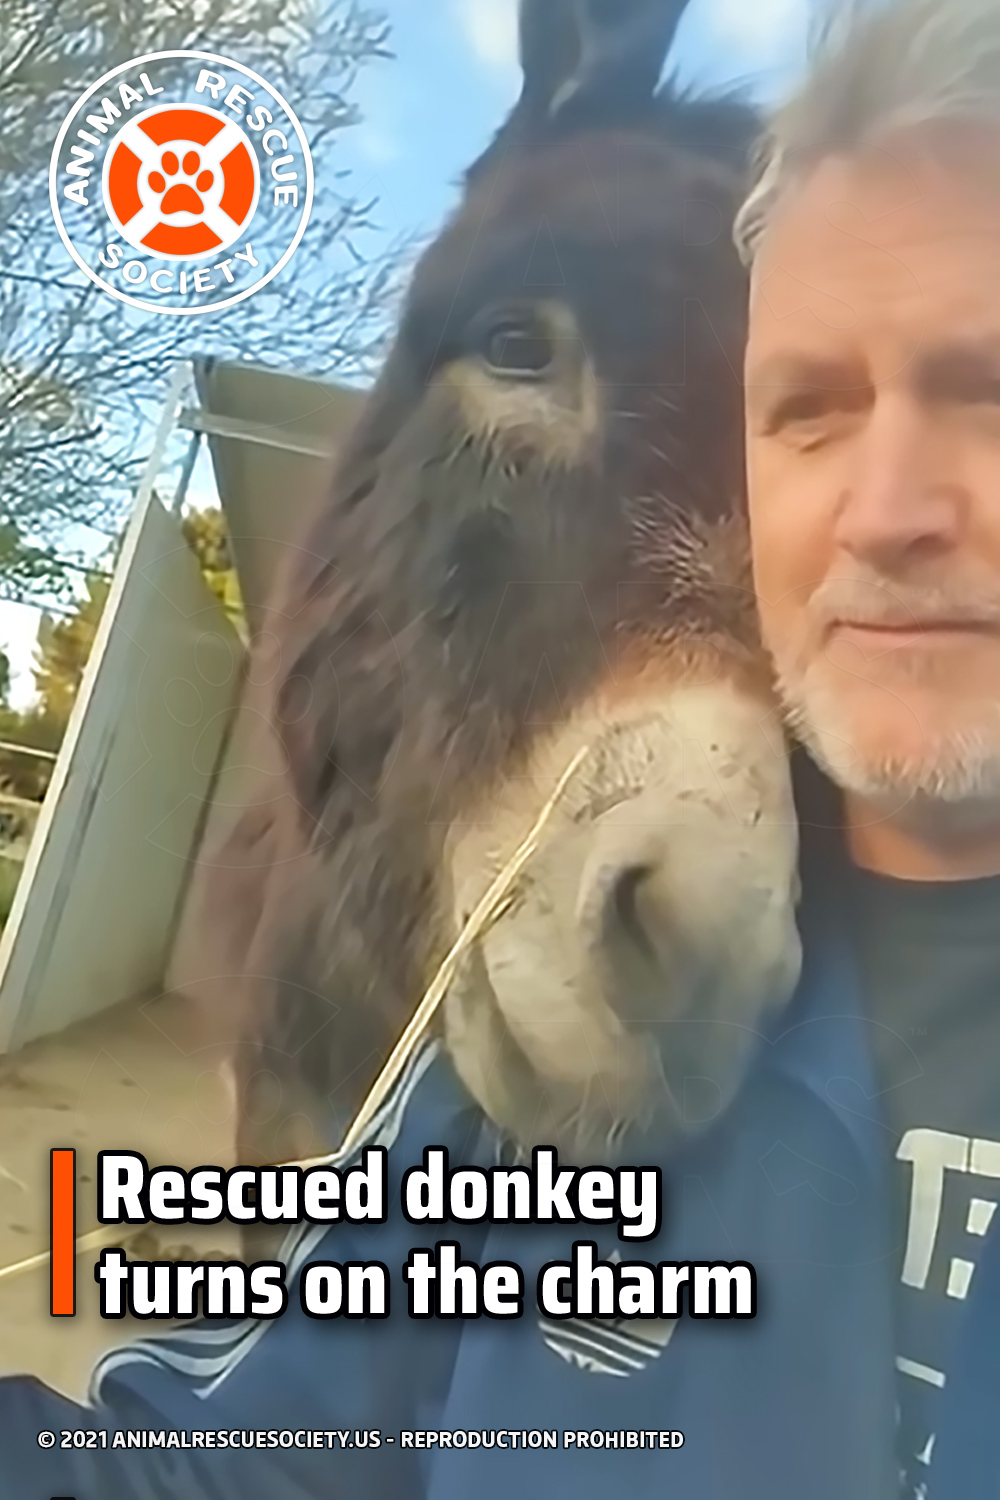 Rescued donkey turns on the charm